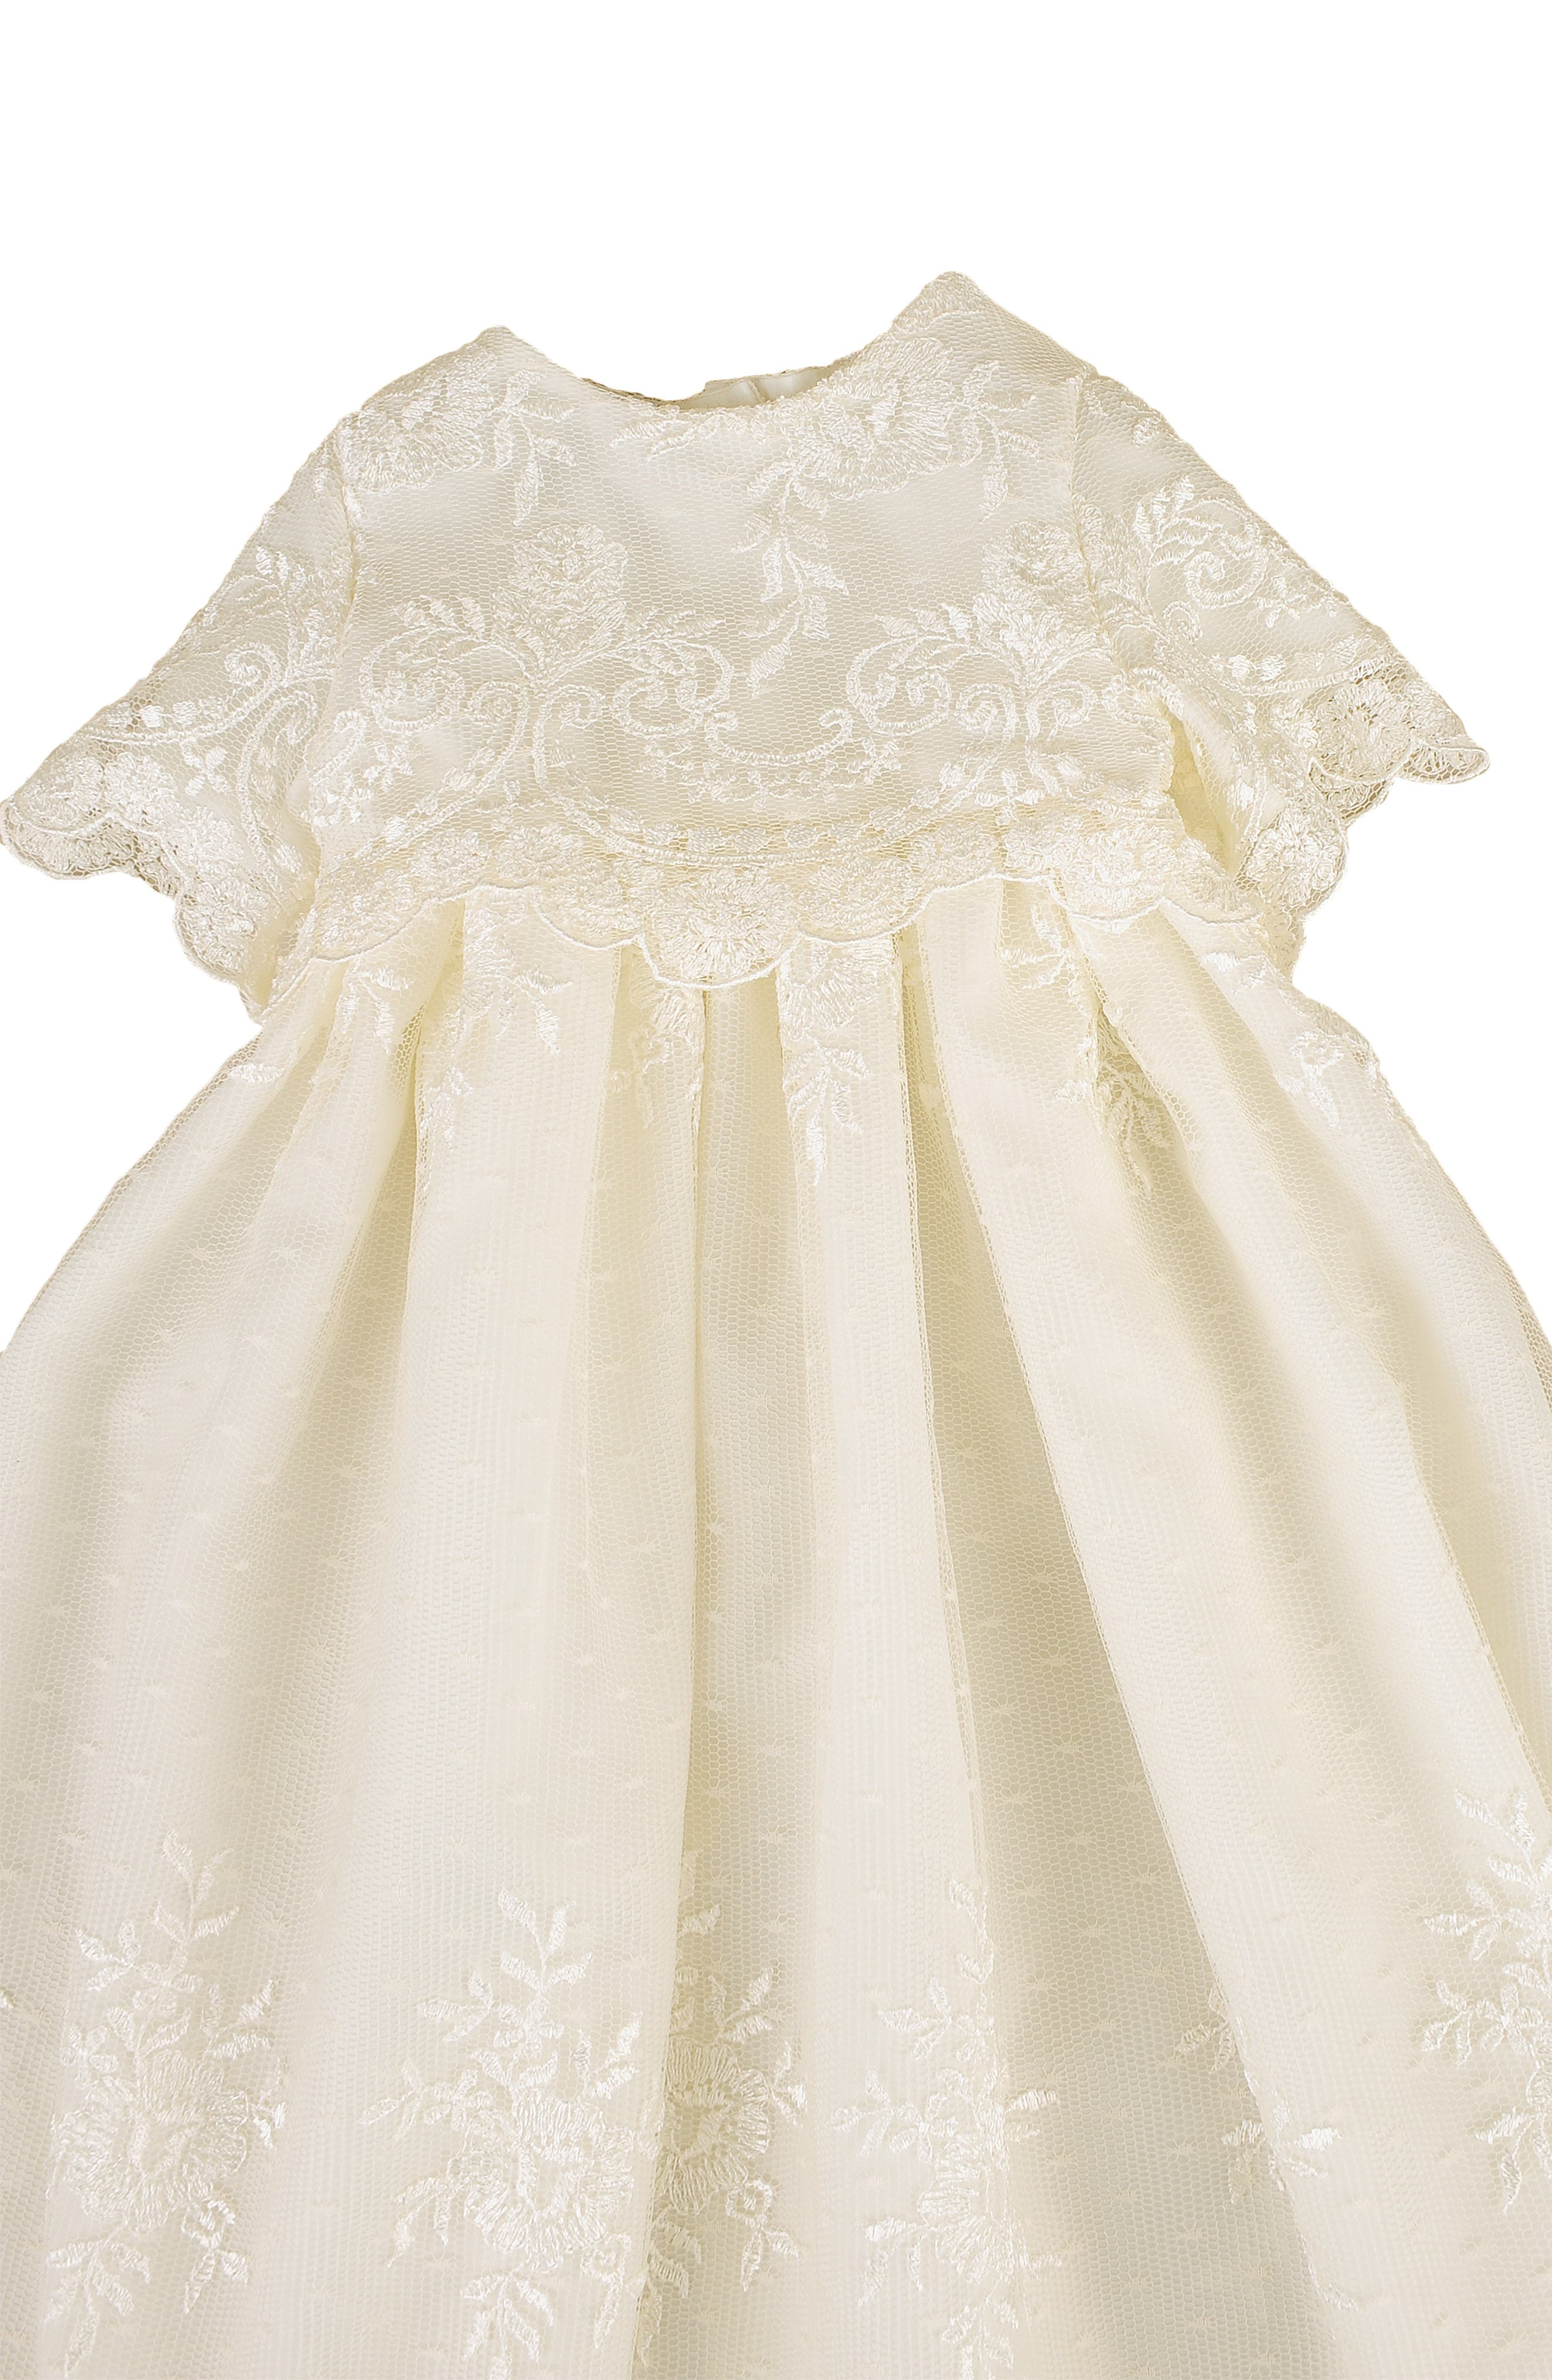 LITTLE THINGS MEAN A LOT, Christening Gown, Shawl, Slip & Bonnet Set, Alternate thumbnail 3, color, IVORY